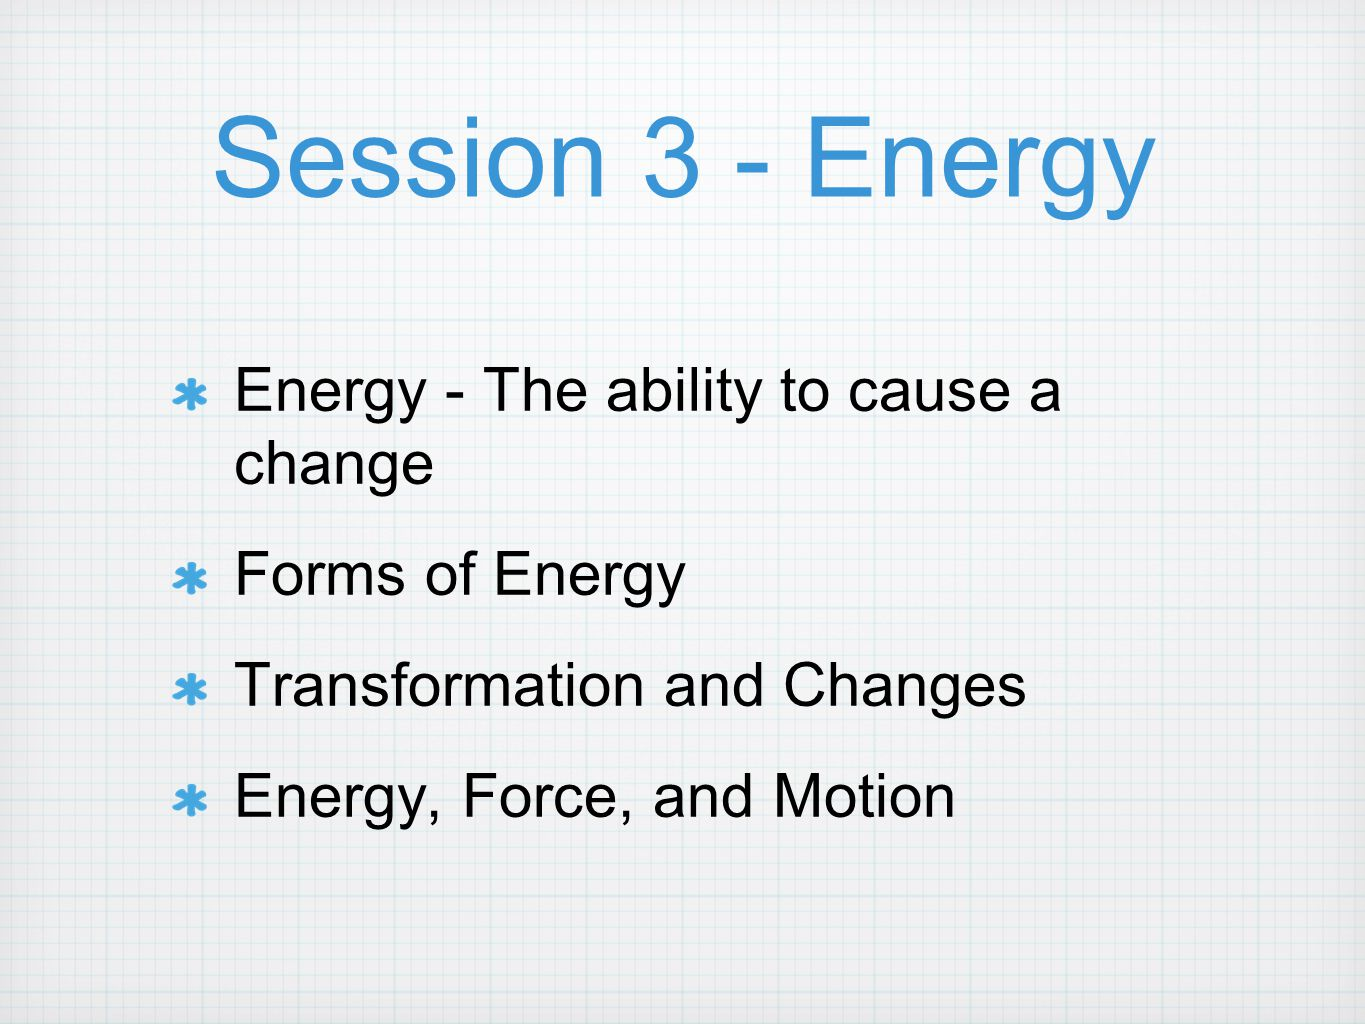 Session 3 - Energy Energy - The ability to cause a change